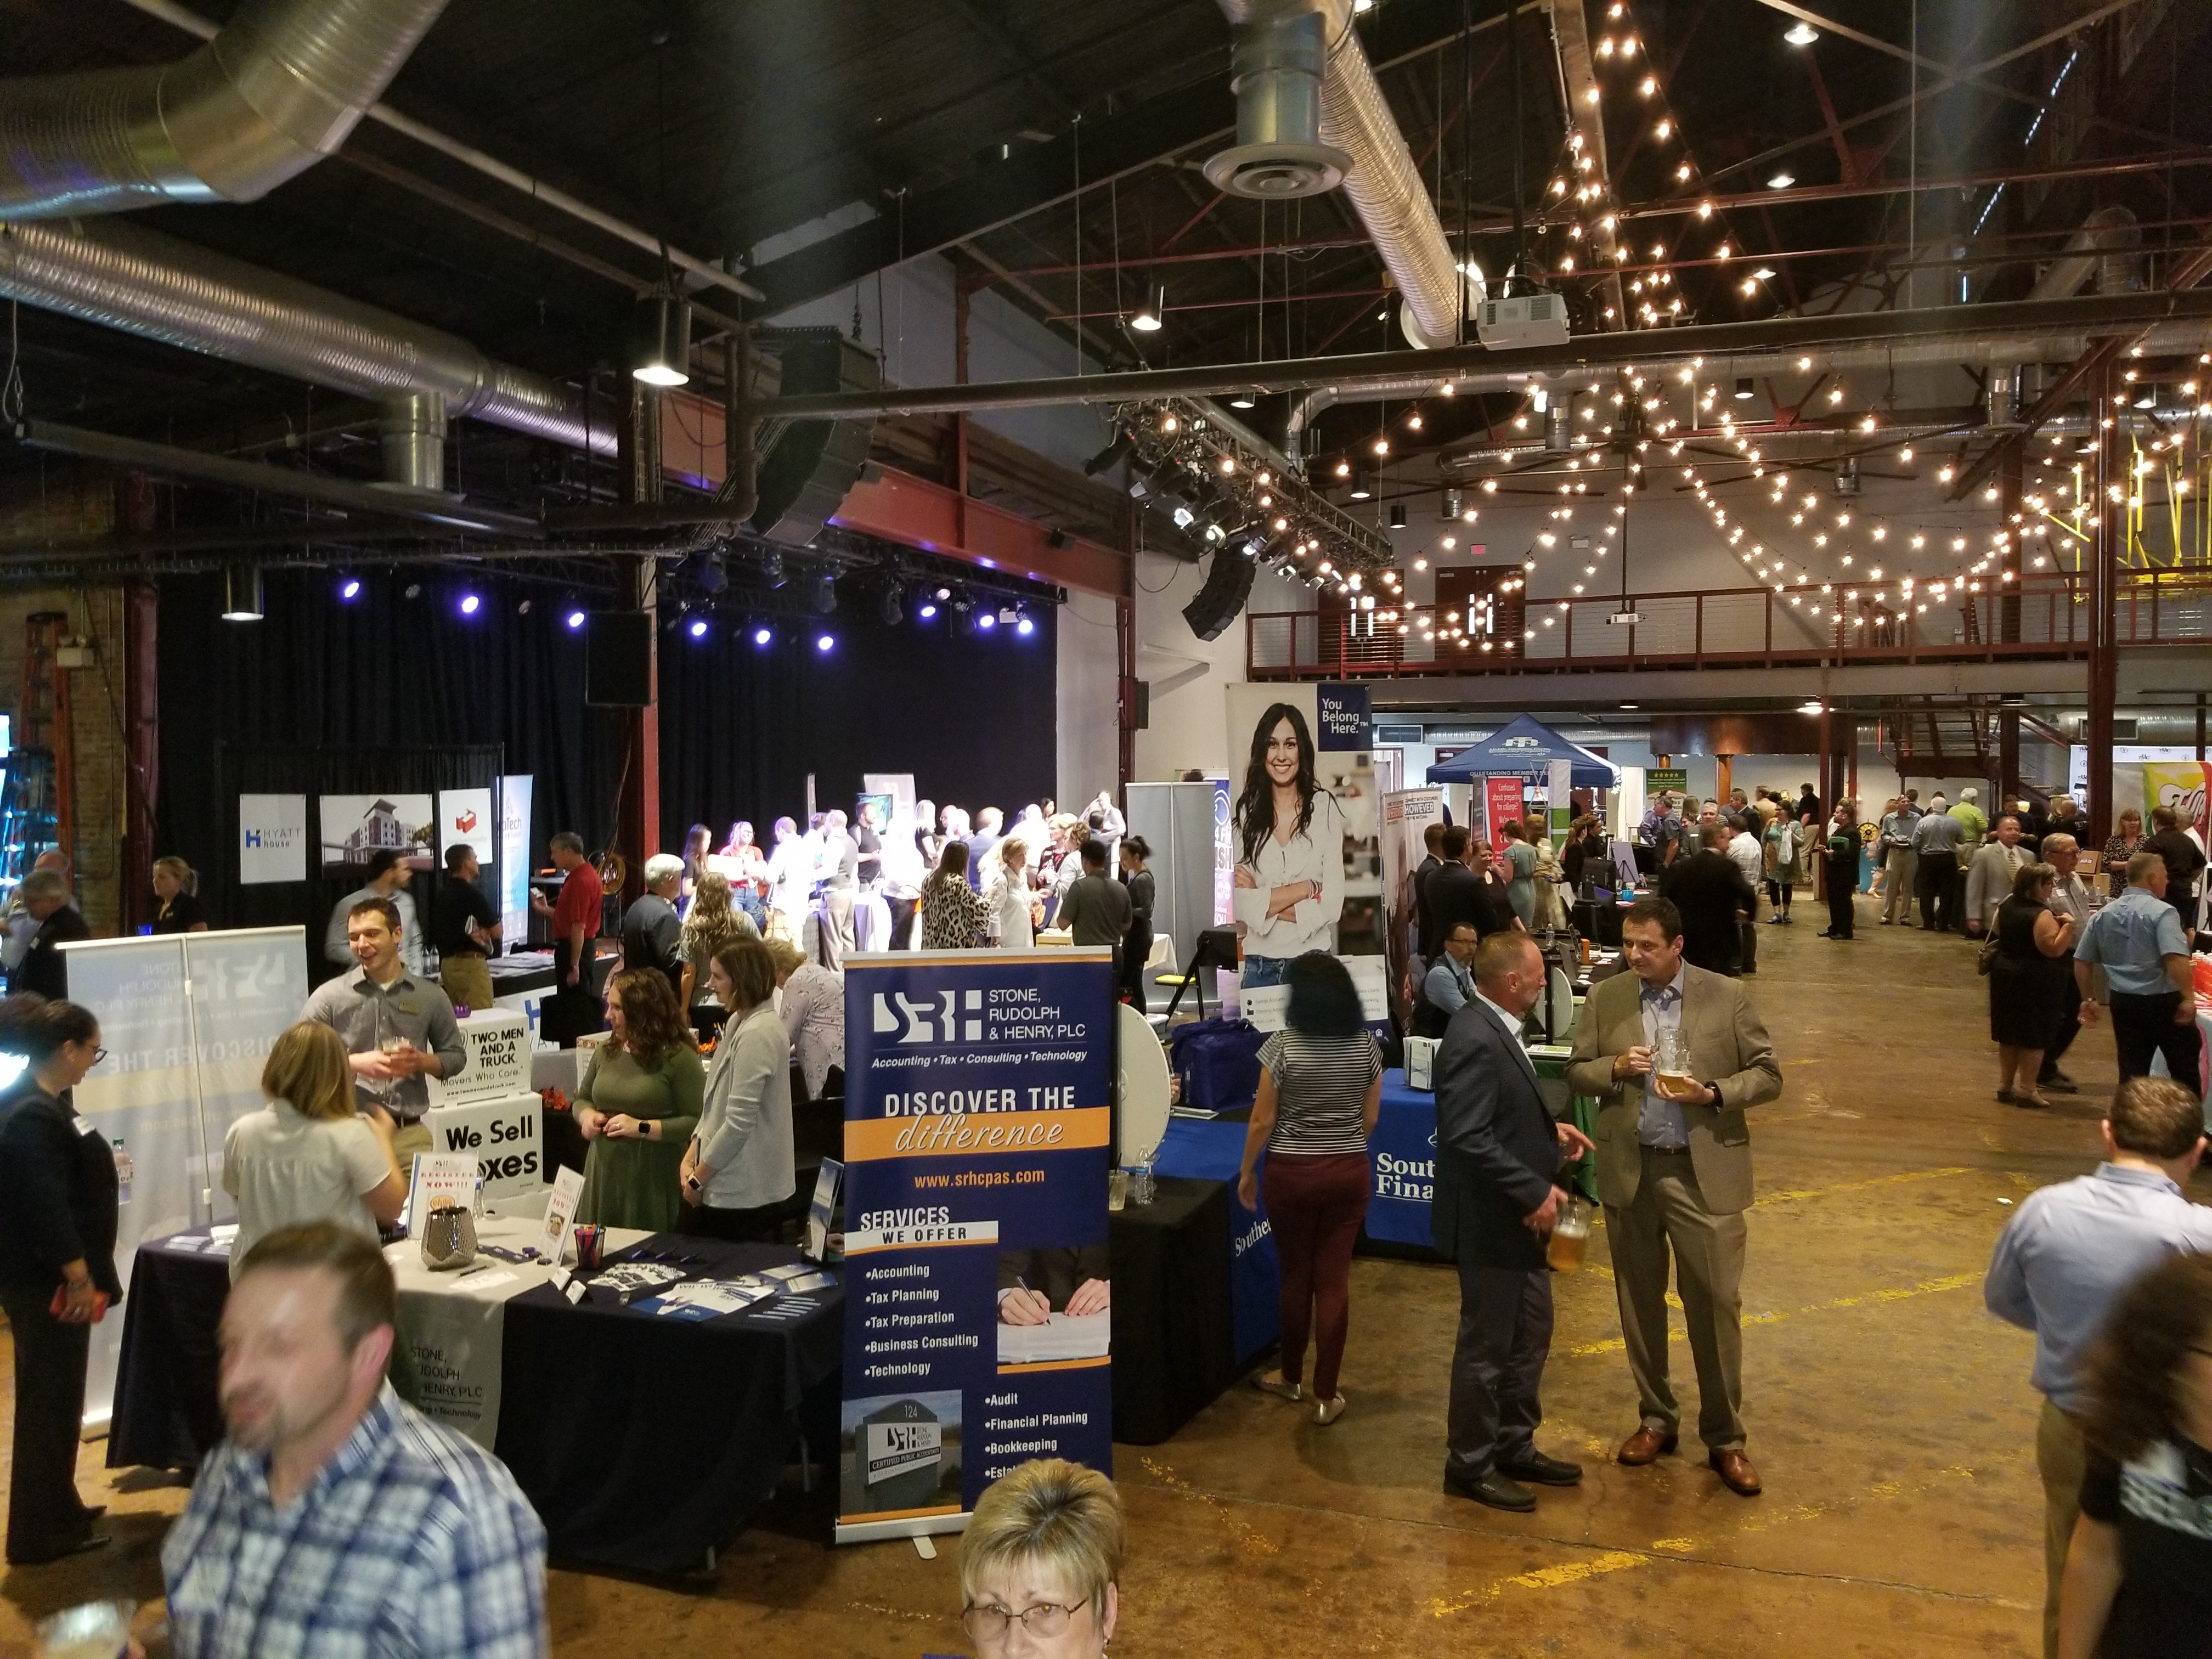 Williamson Inc. business expo offers job seekers a chance to connect with employers (and free beer)